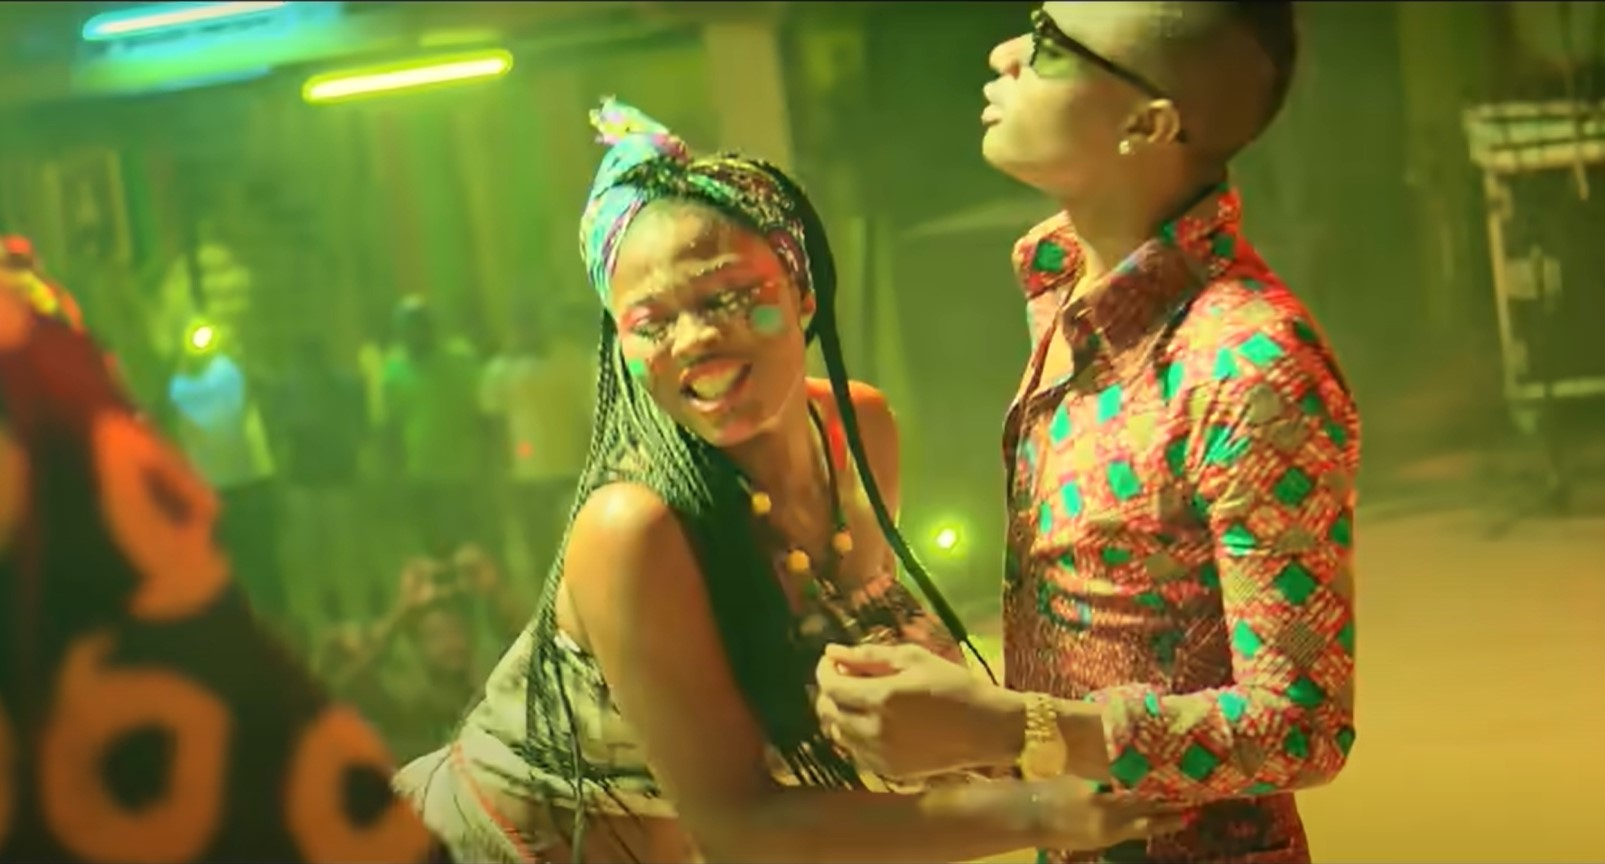 What Wizkid music video is this still from?